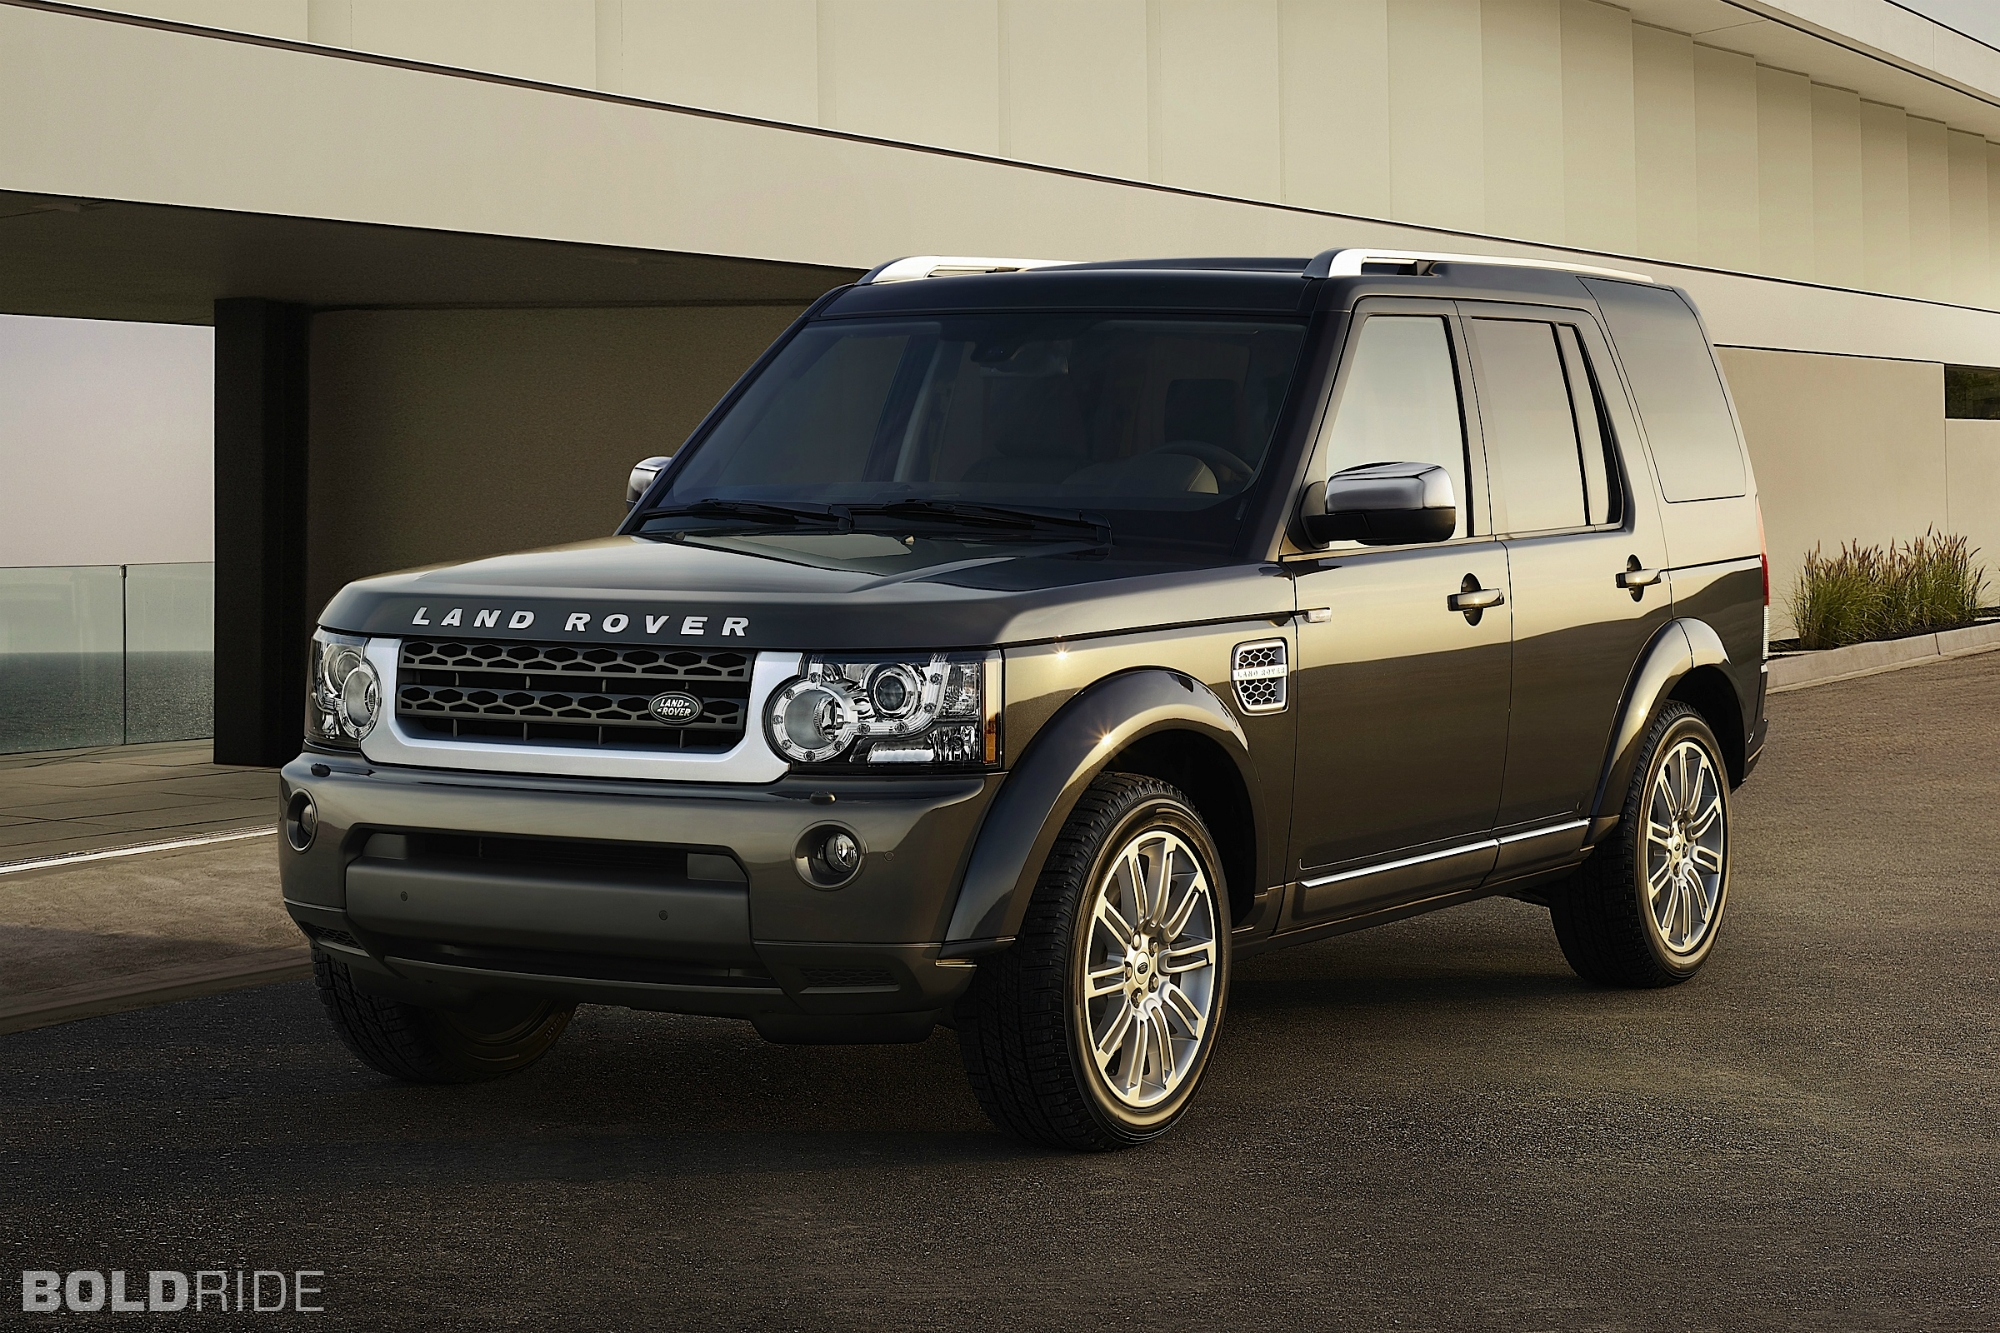 2013 land rover lr4 information and photos zombiedrive. Black Bedroom Furniture Sets. Home Design Ideas